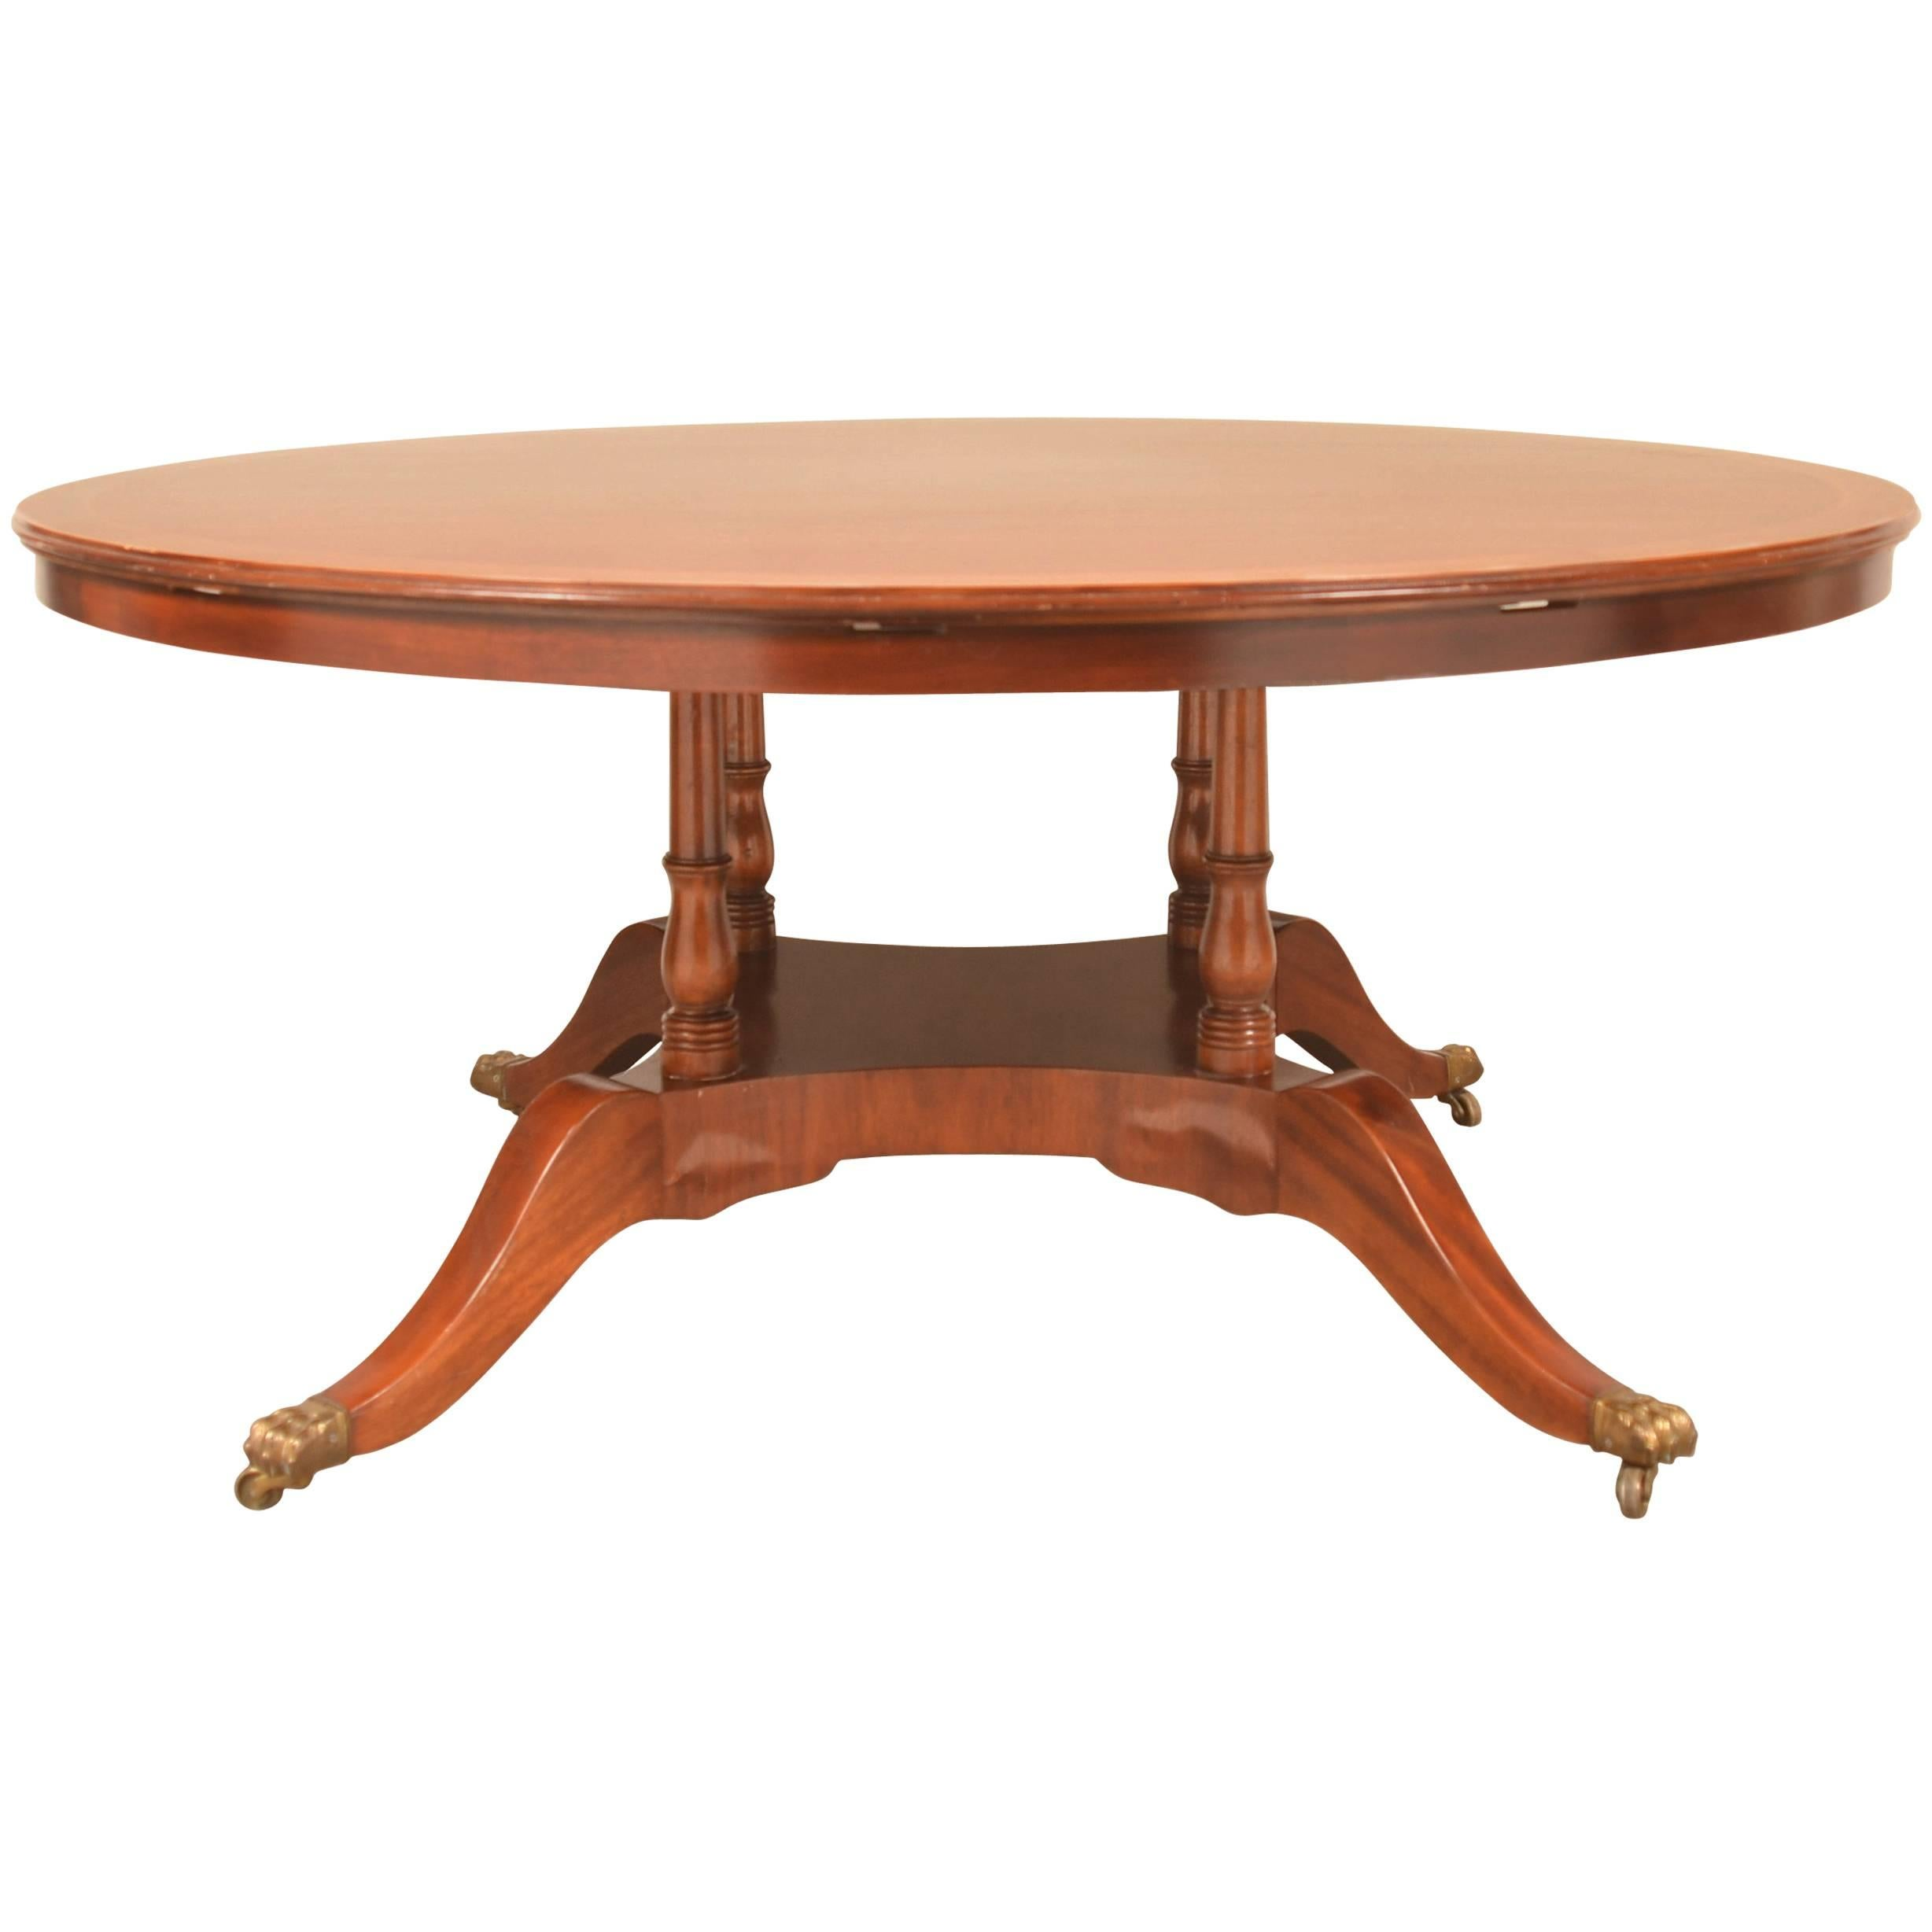 Superieur Regency Style Expanding Round Dining Table For Sale